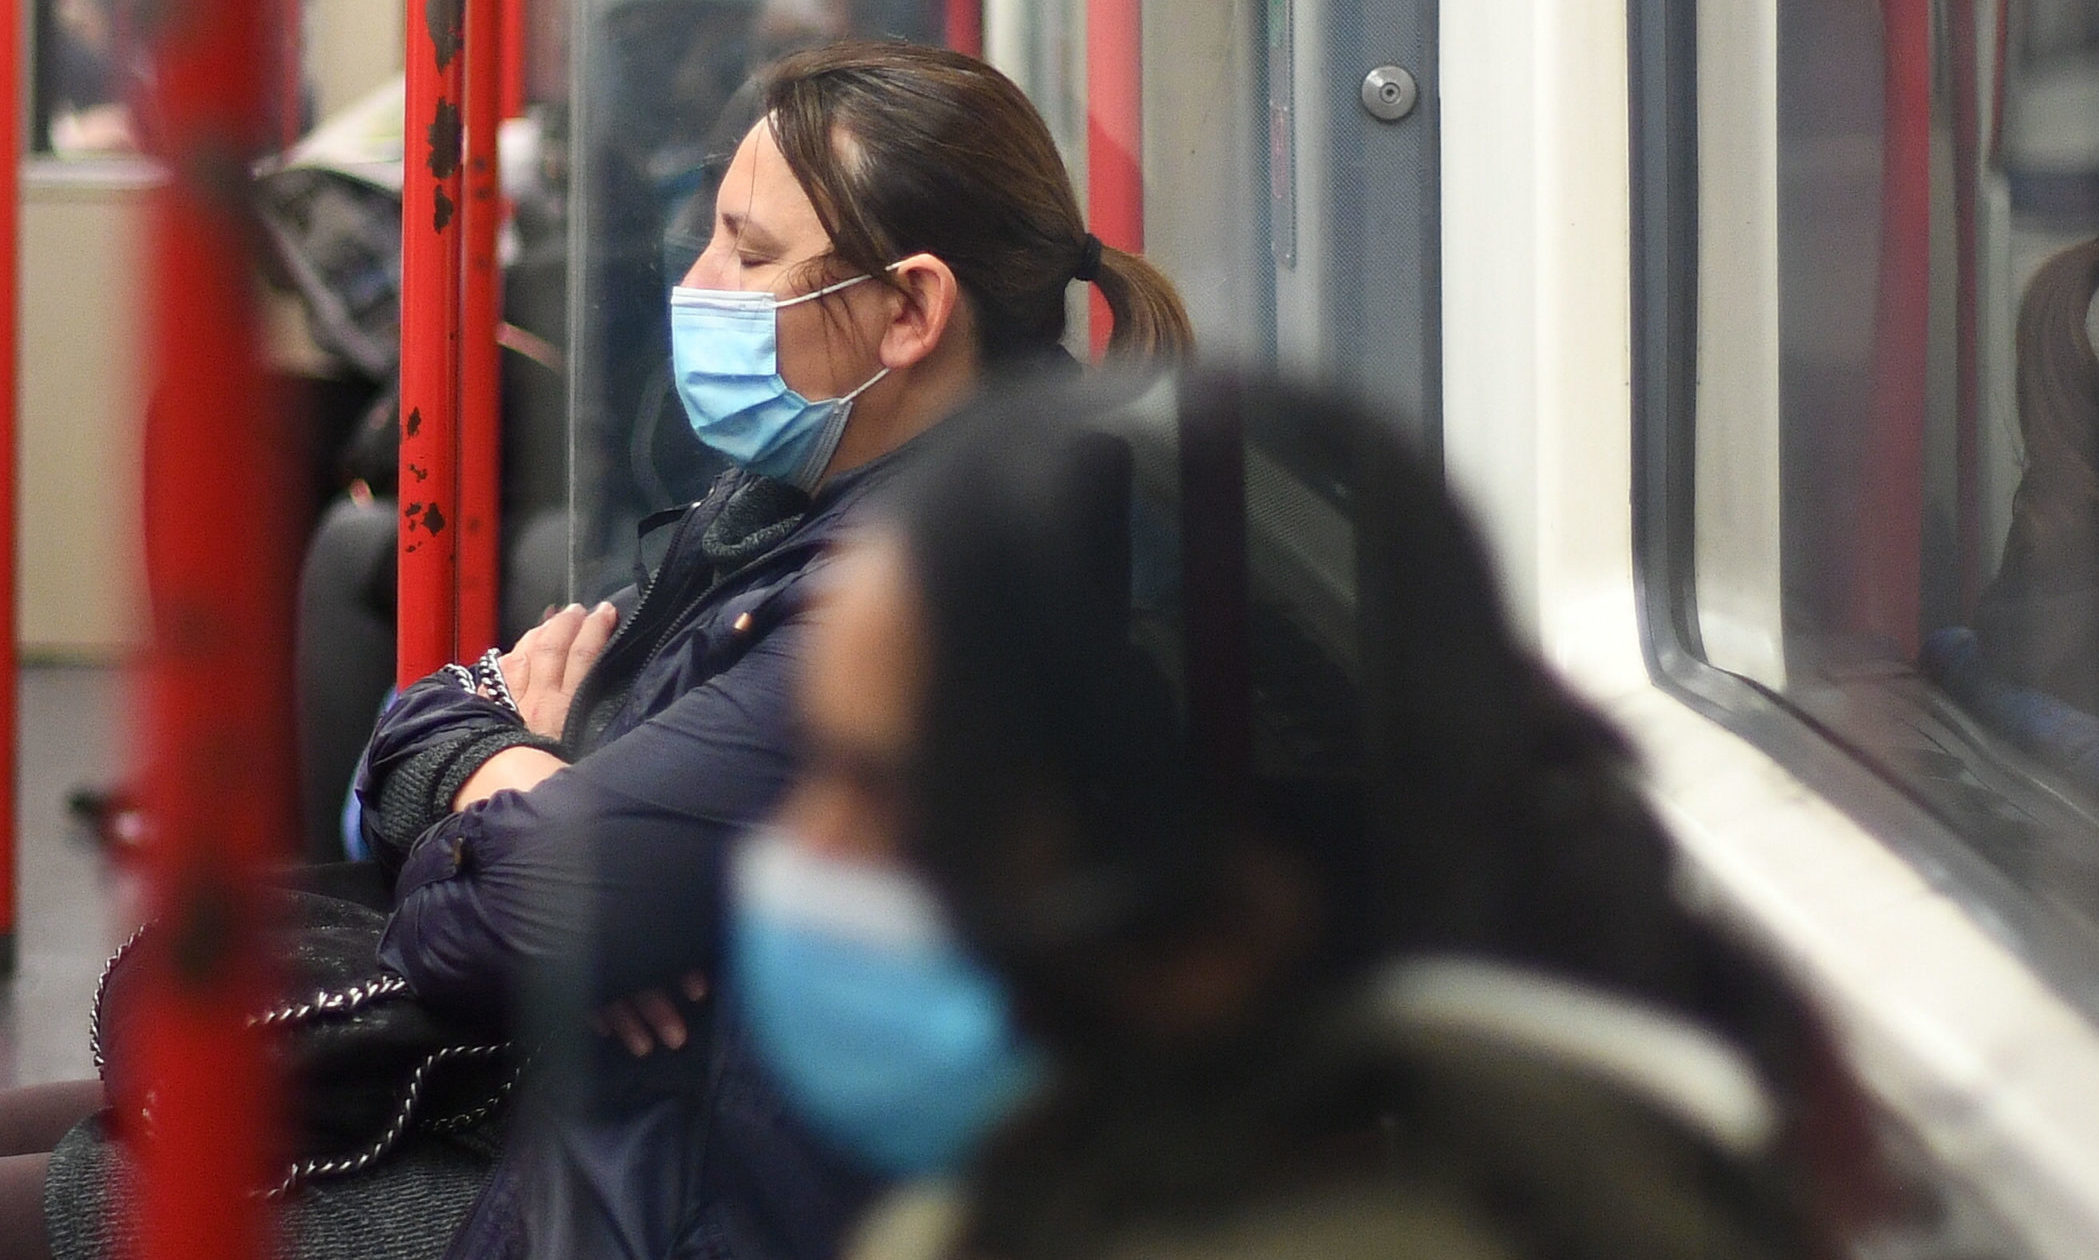 Passengers wearing masks on a train.